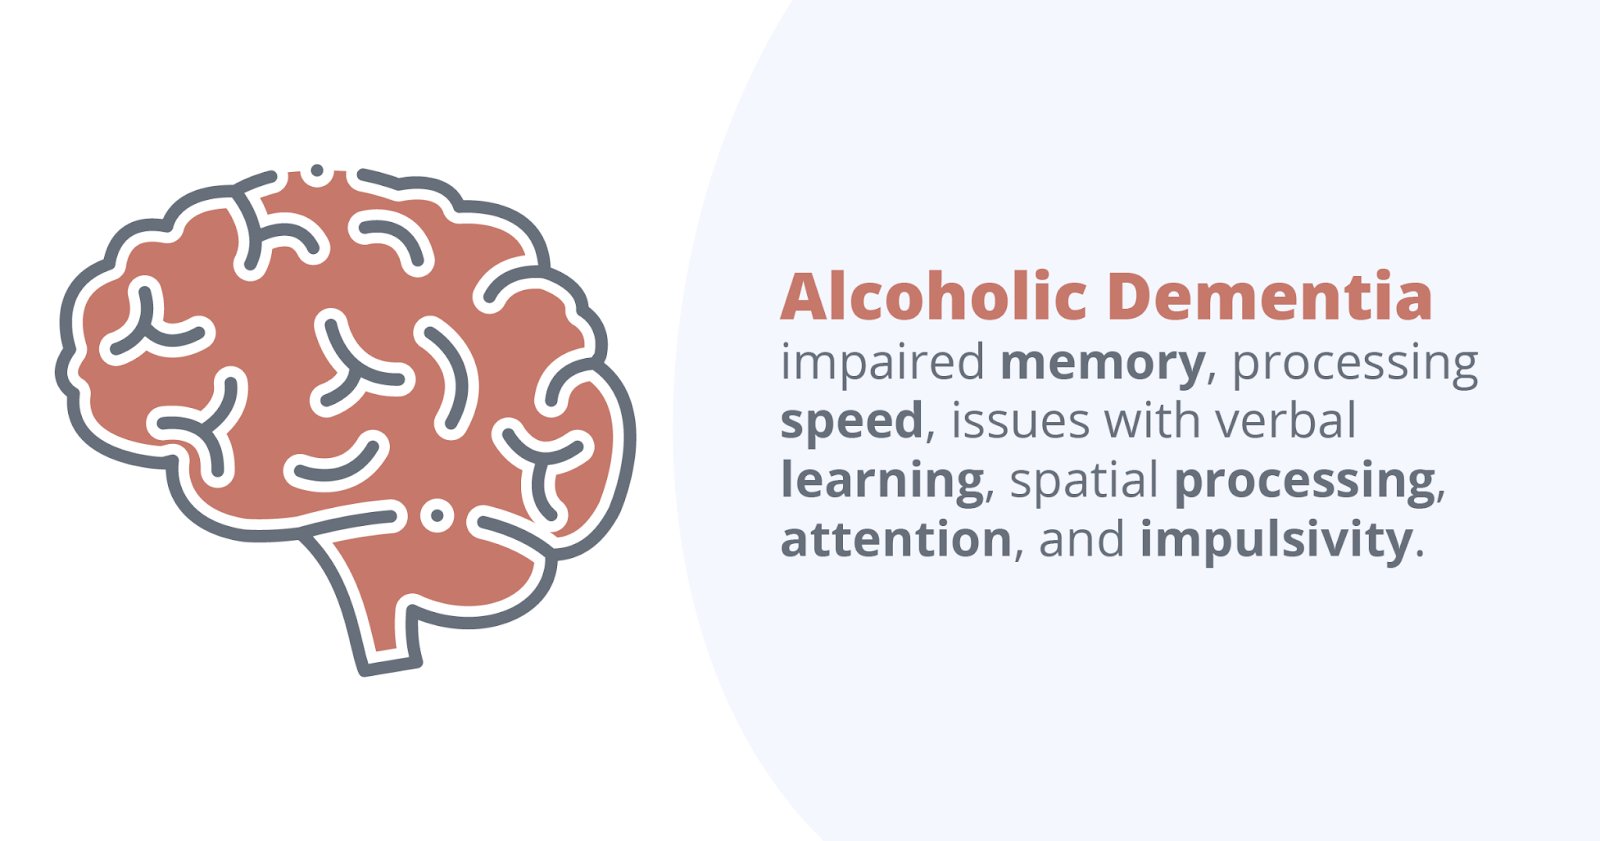 Alcoholic dementia impaired memory, processing speed, issues with verbal learning, spatial processing, attention, and impulsivity.